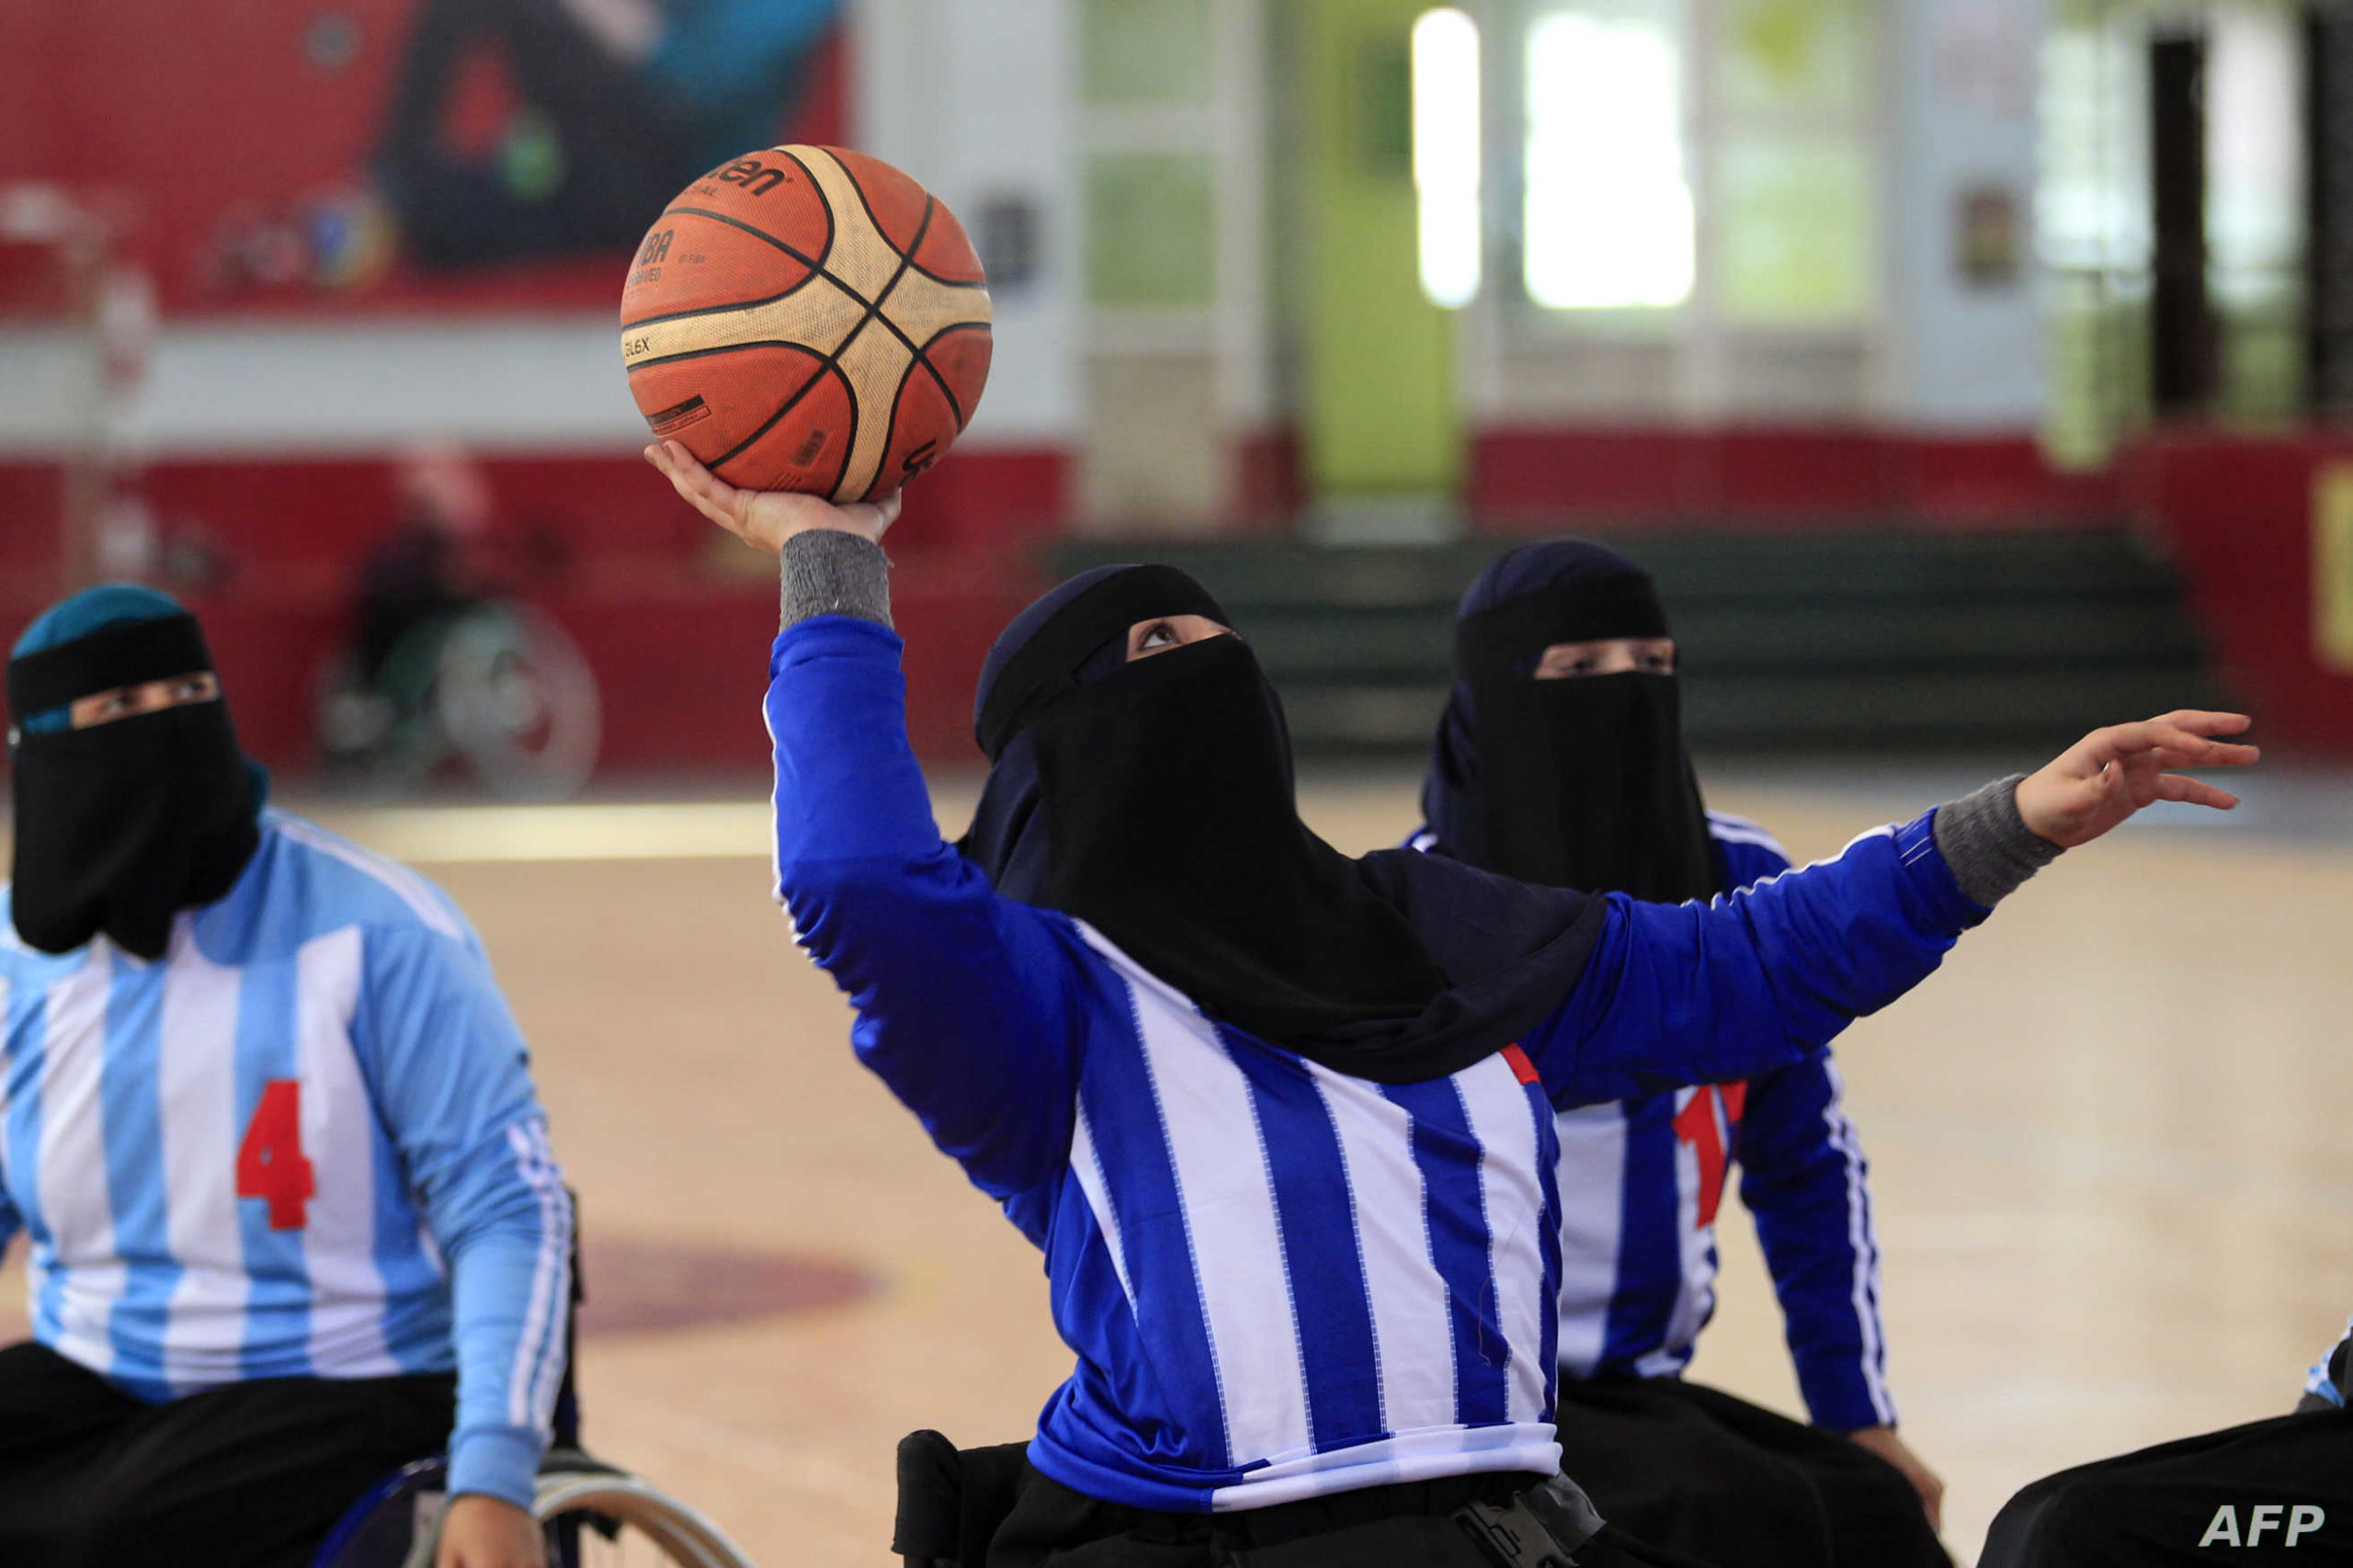 Yemen's Women With Disabilities Seek Inclusion Through Wheelchair Basketball